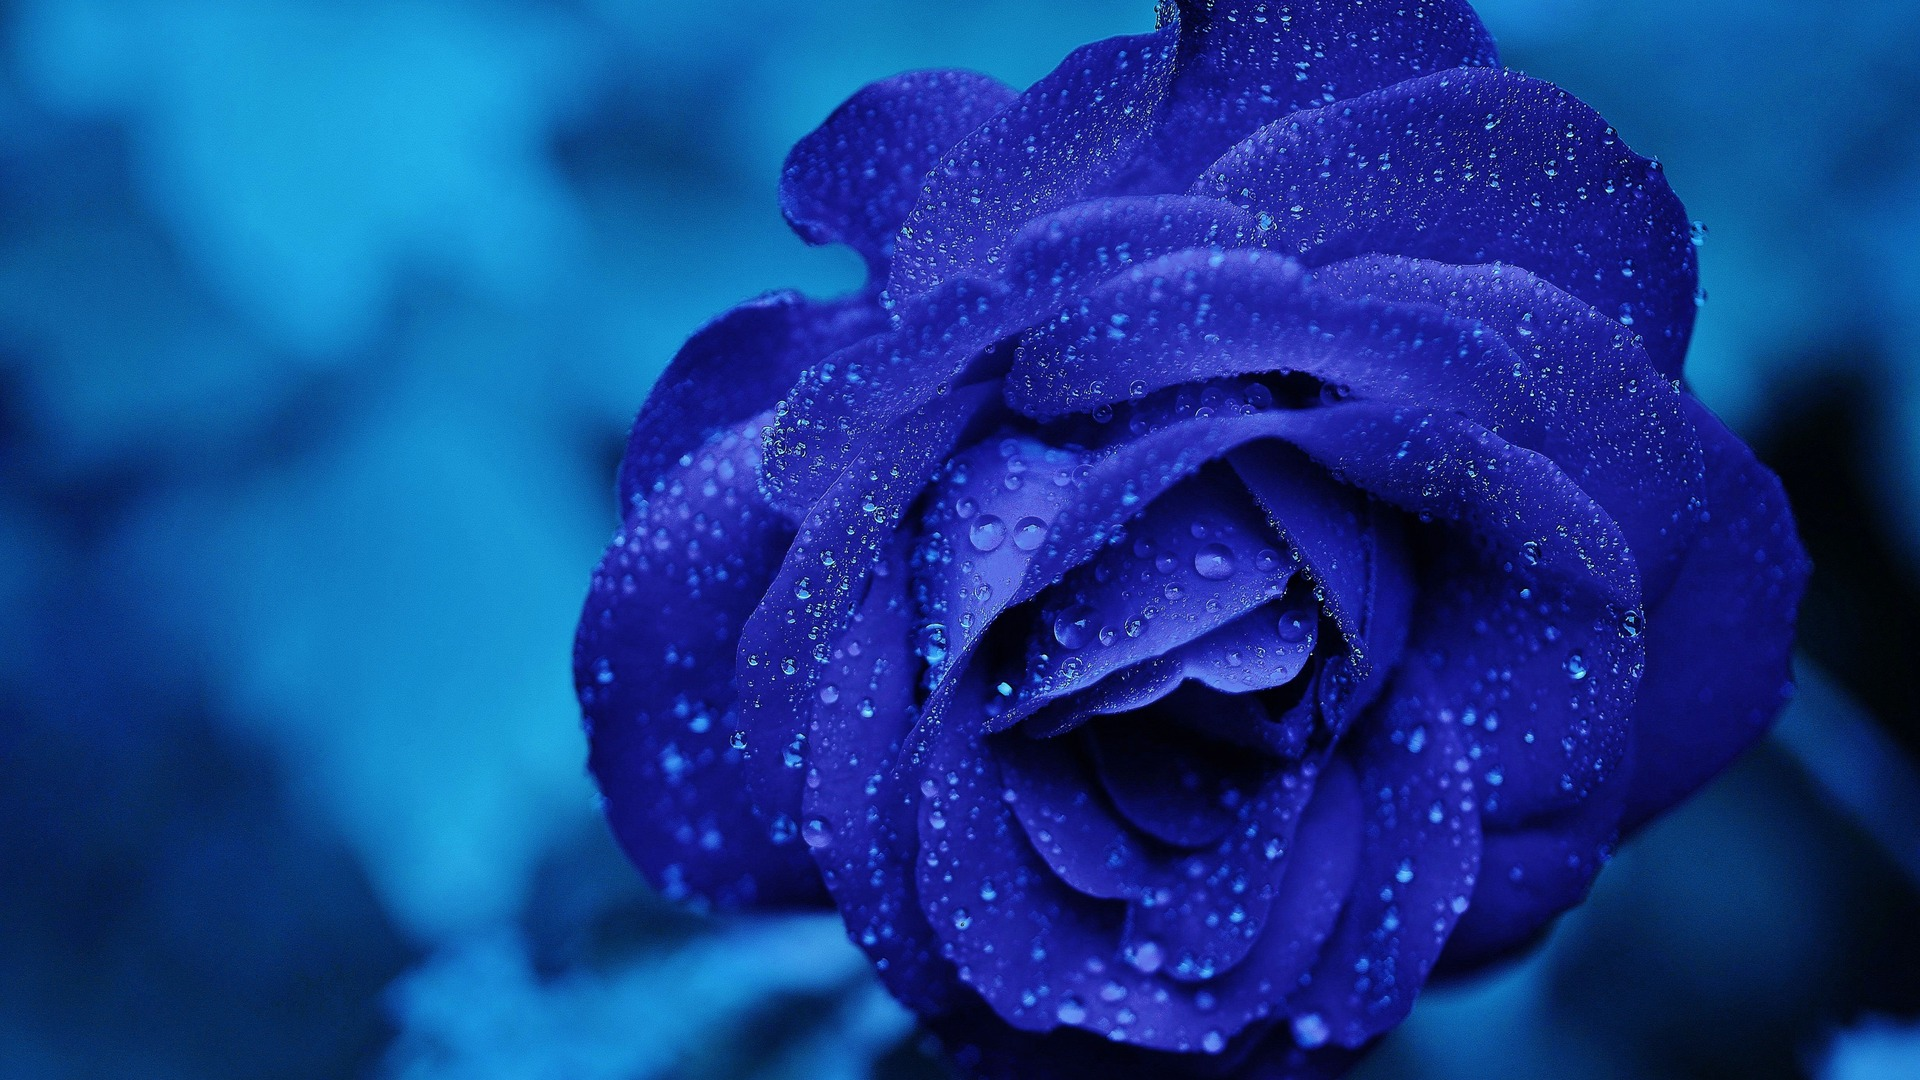 1920x1080 Blue Rose 4k Laptop Full Hd 1080p Hd 4k Wallpapers Images Backgrounds Photos And Pictures